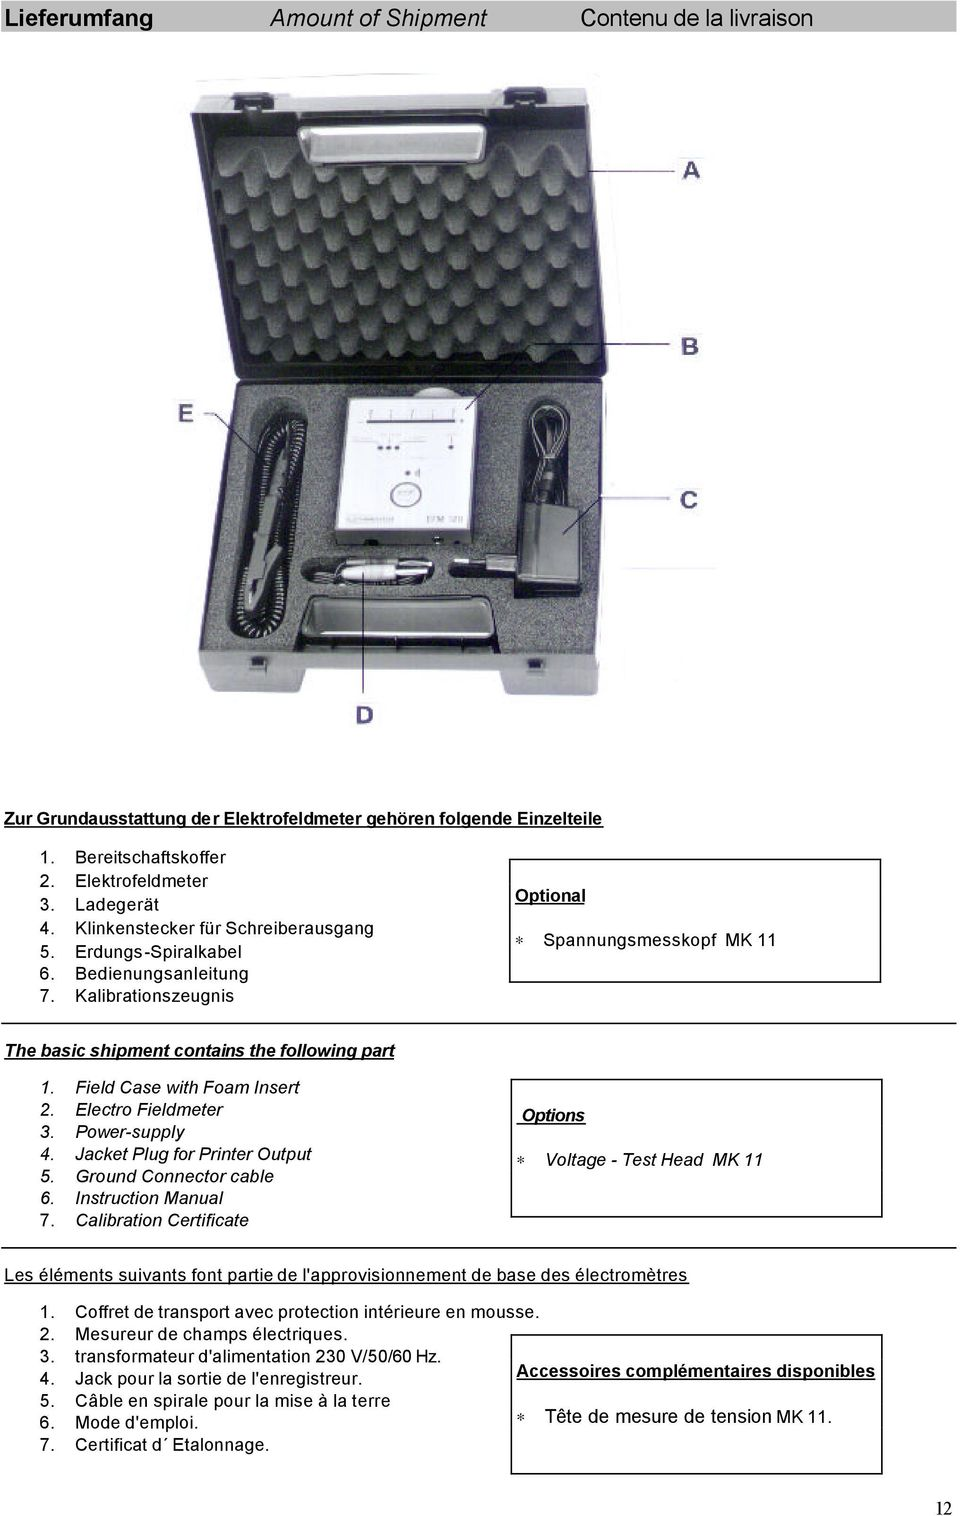 Field Case with Foam Insert 2. Electro Fieldmeter 3. Power-supply 4. Jacket Plug for Printer Output 5. Ground Connector cable 6. Instruction Manual 7.